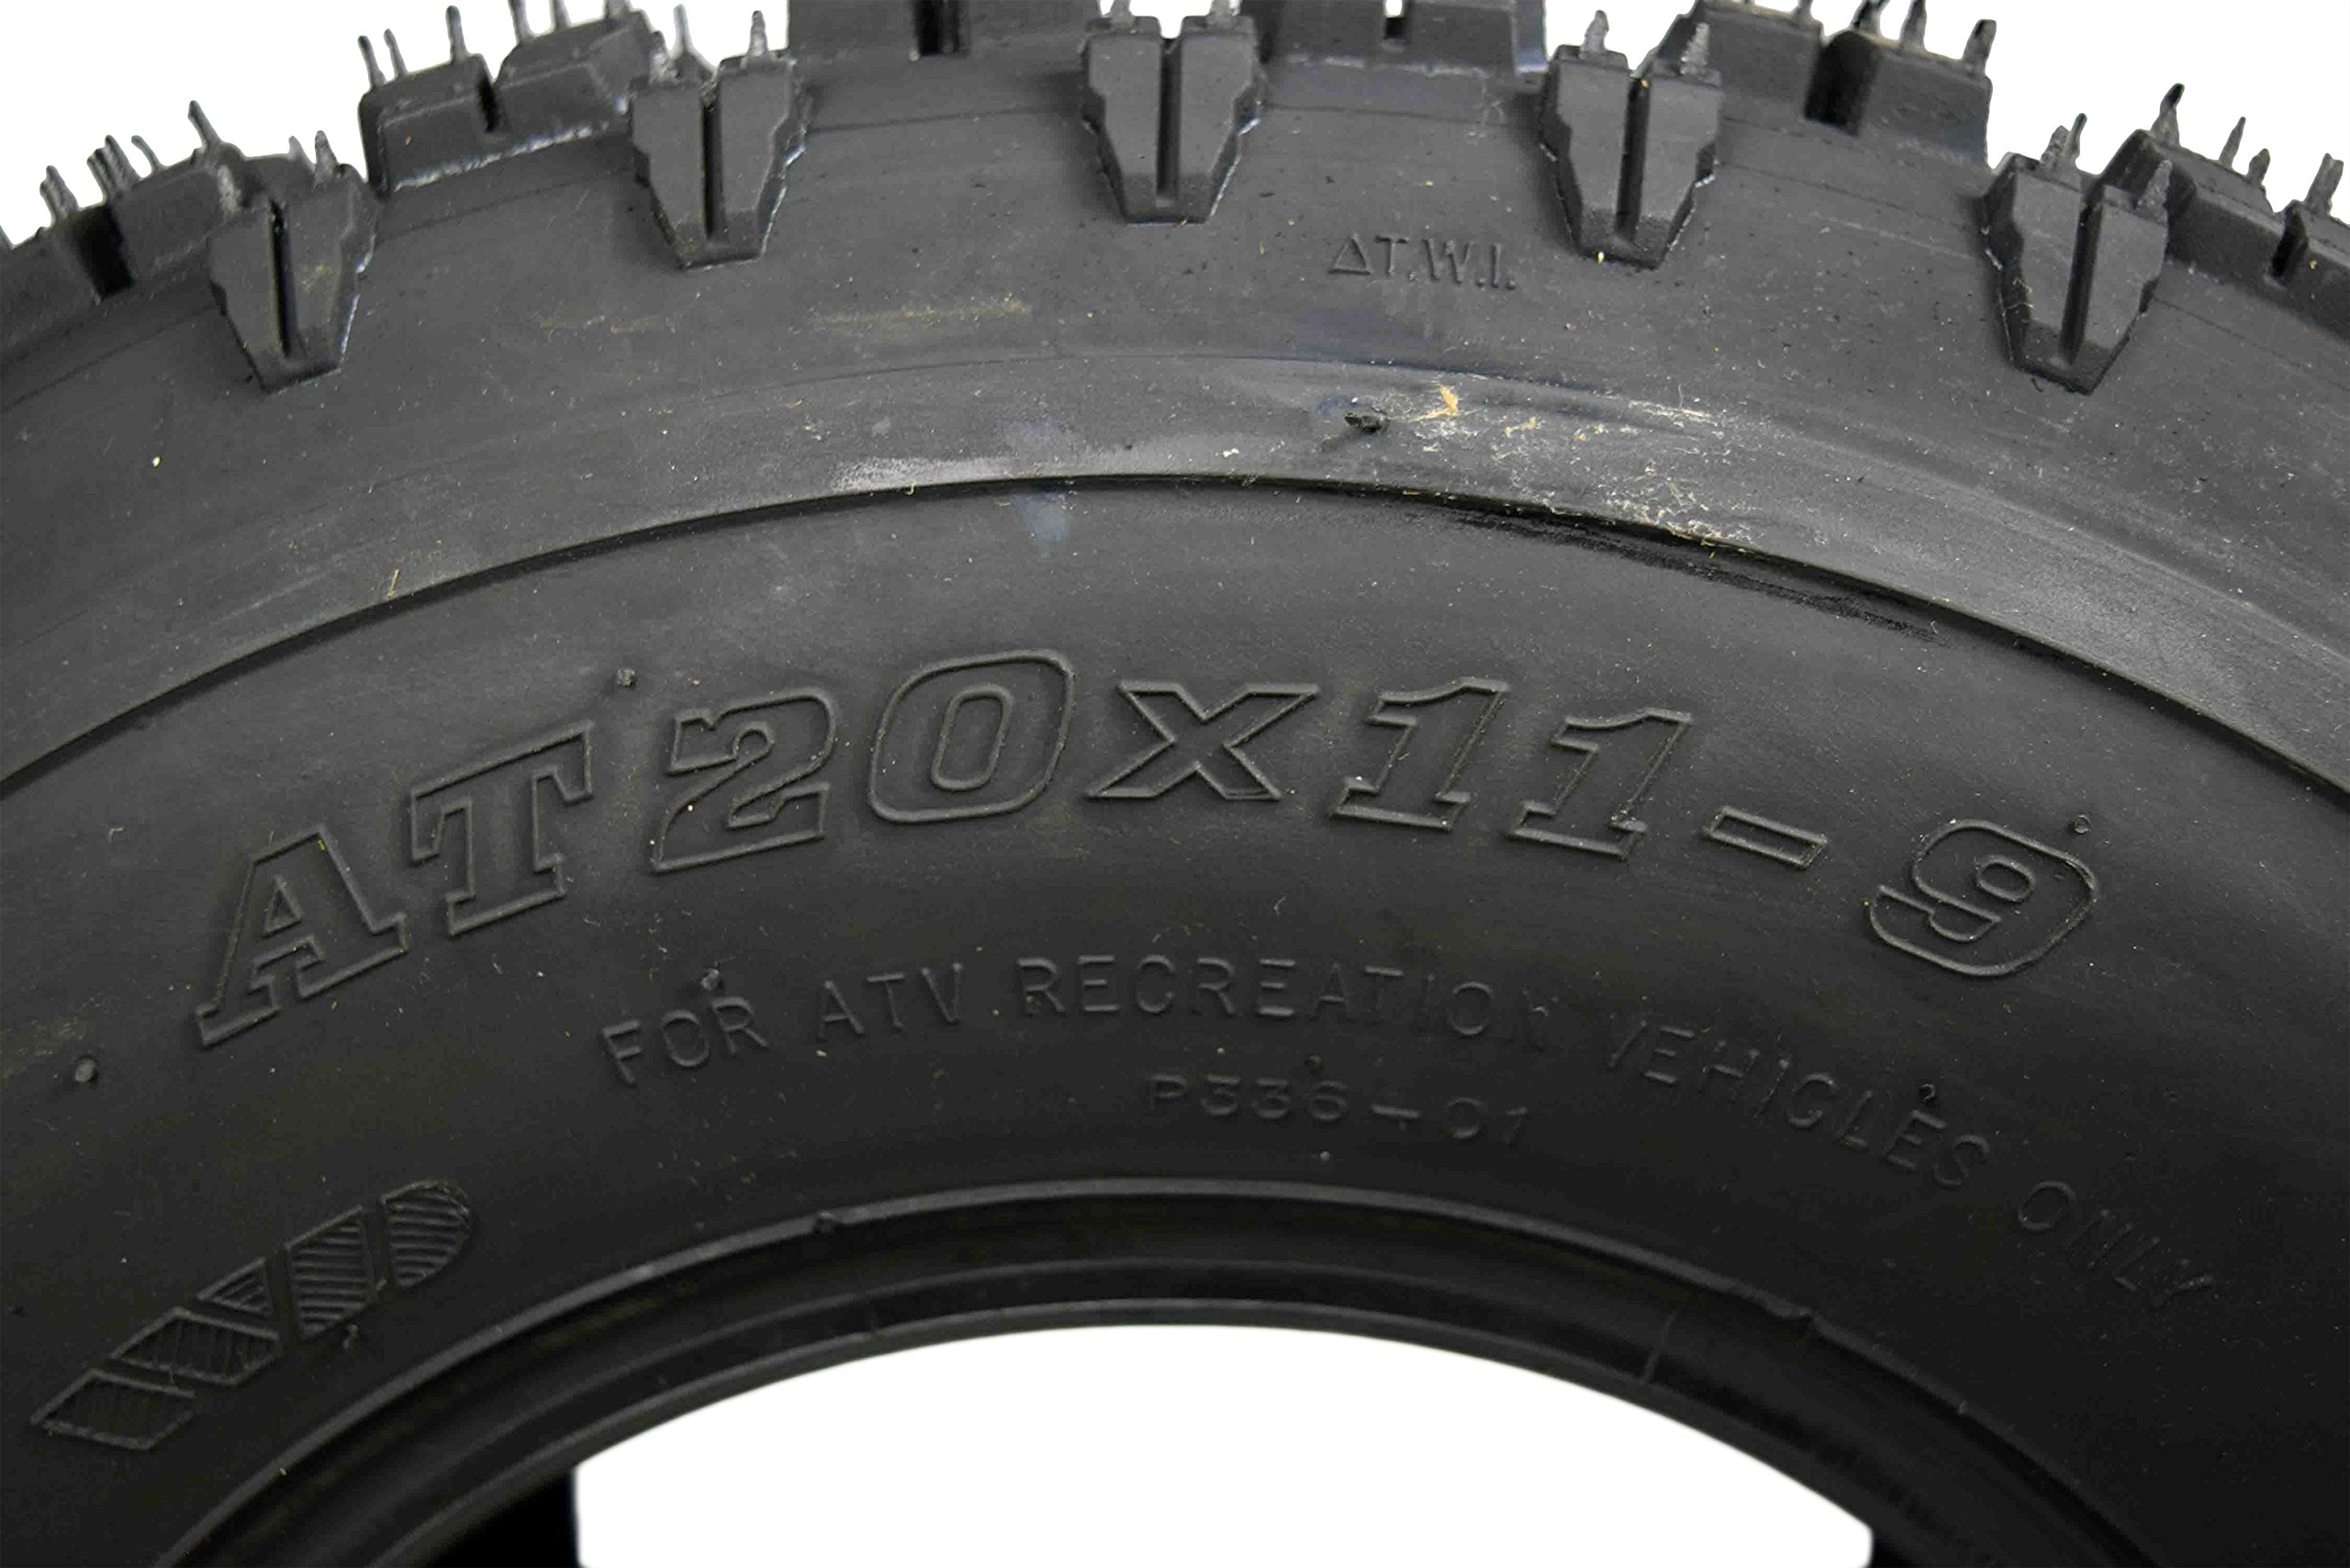 MASSFX 20'' Rear ATV Tire Set 20x11-9 Tire 4 PLY 20x11x9 MO20119 2 Pack by MASSFX (Image #2)